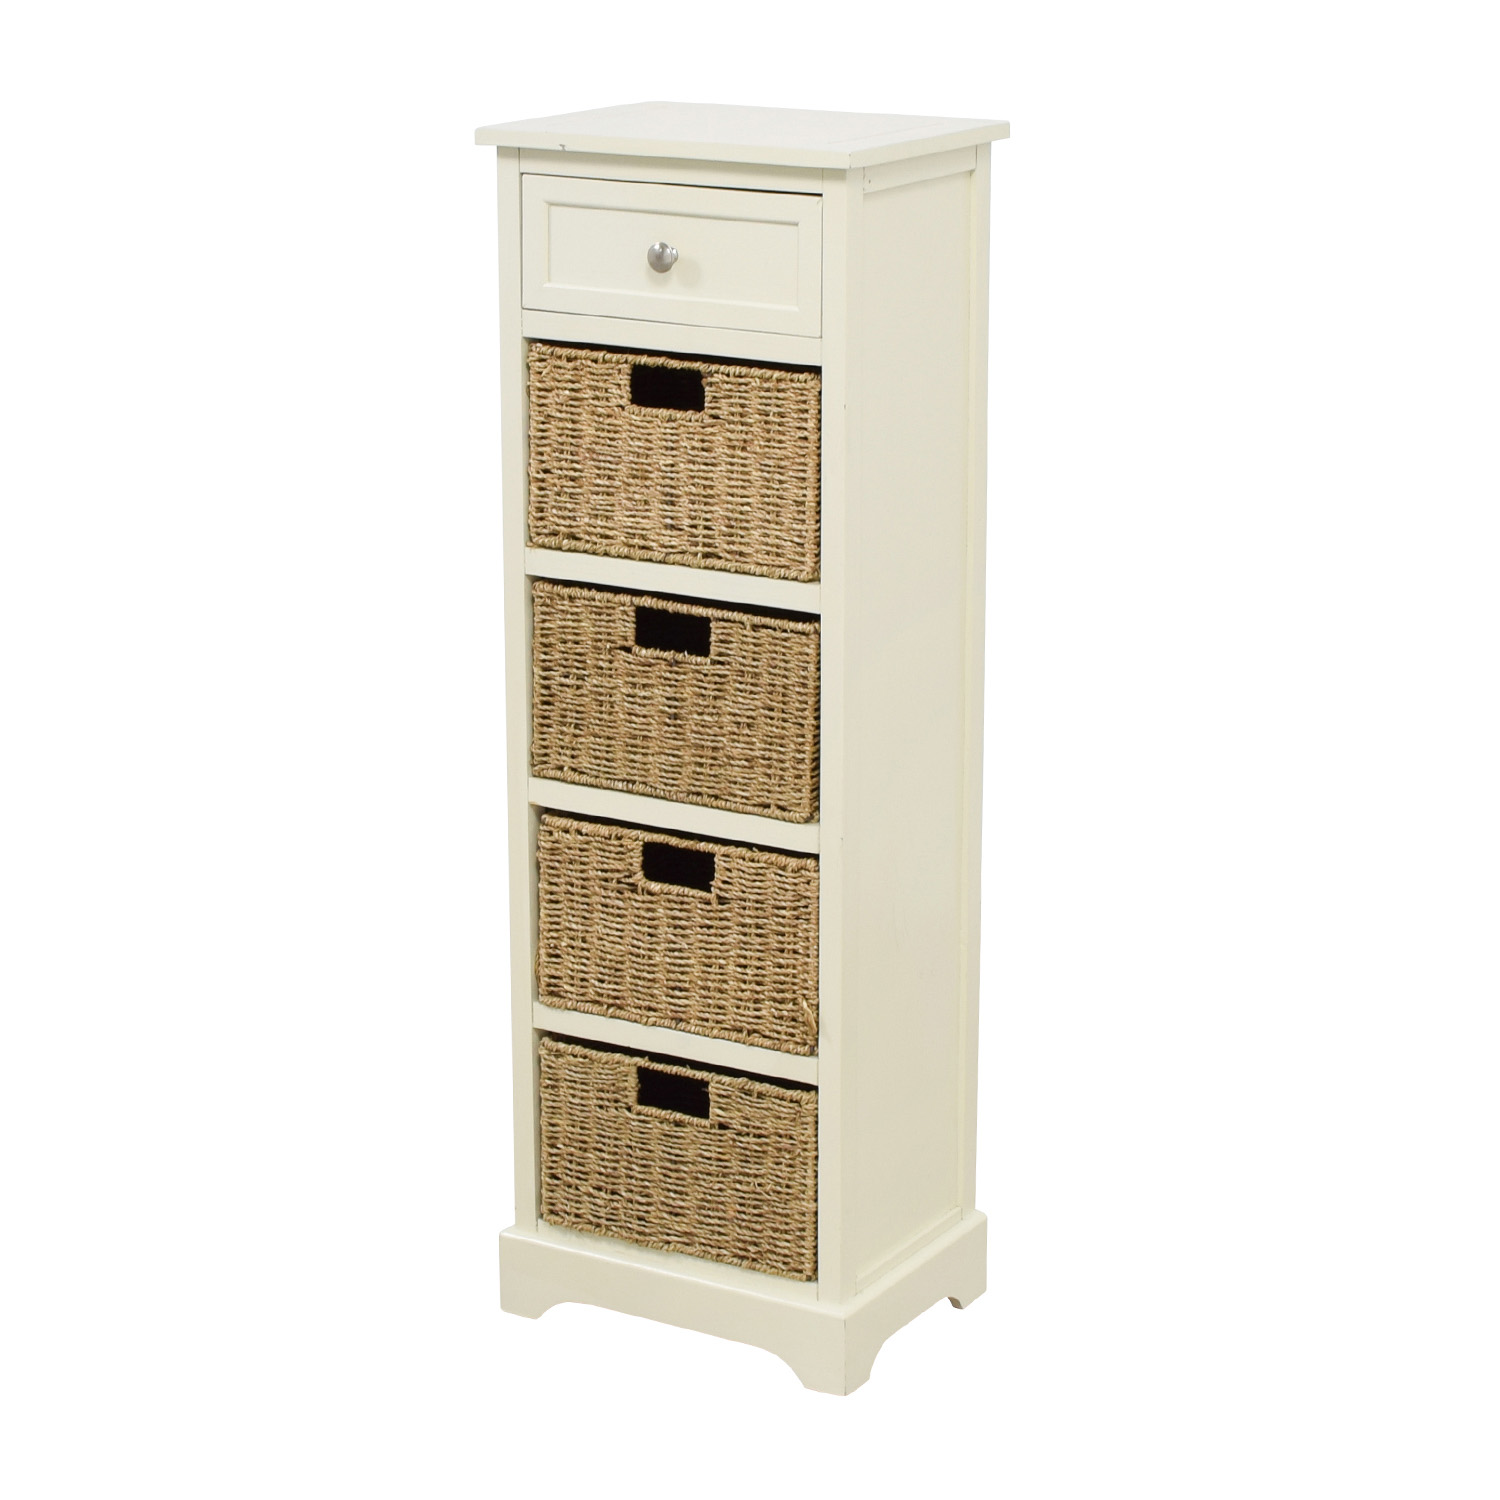 buy Tall White Storage Unit with Drawer and Wicker Baskets